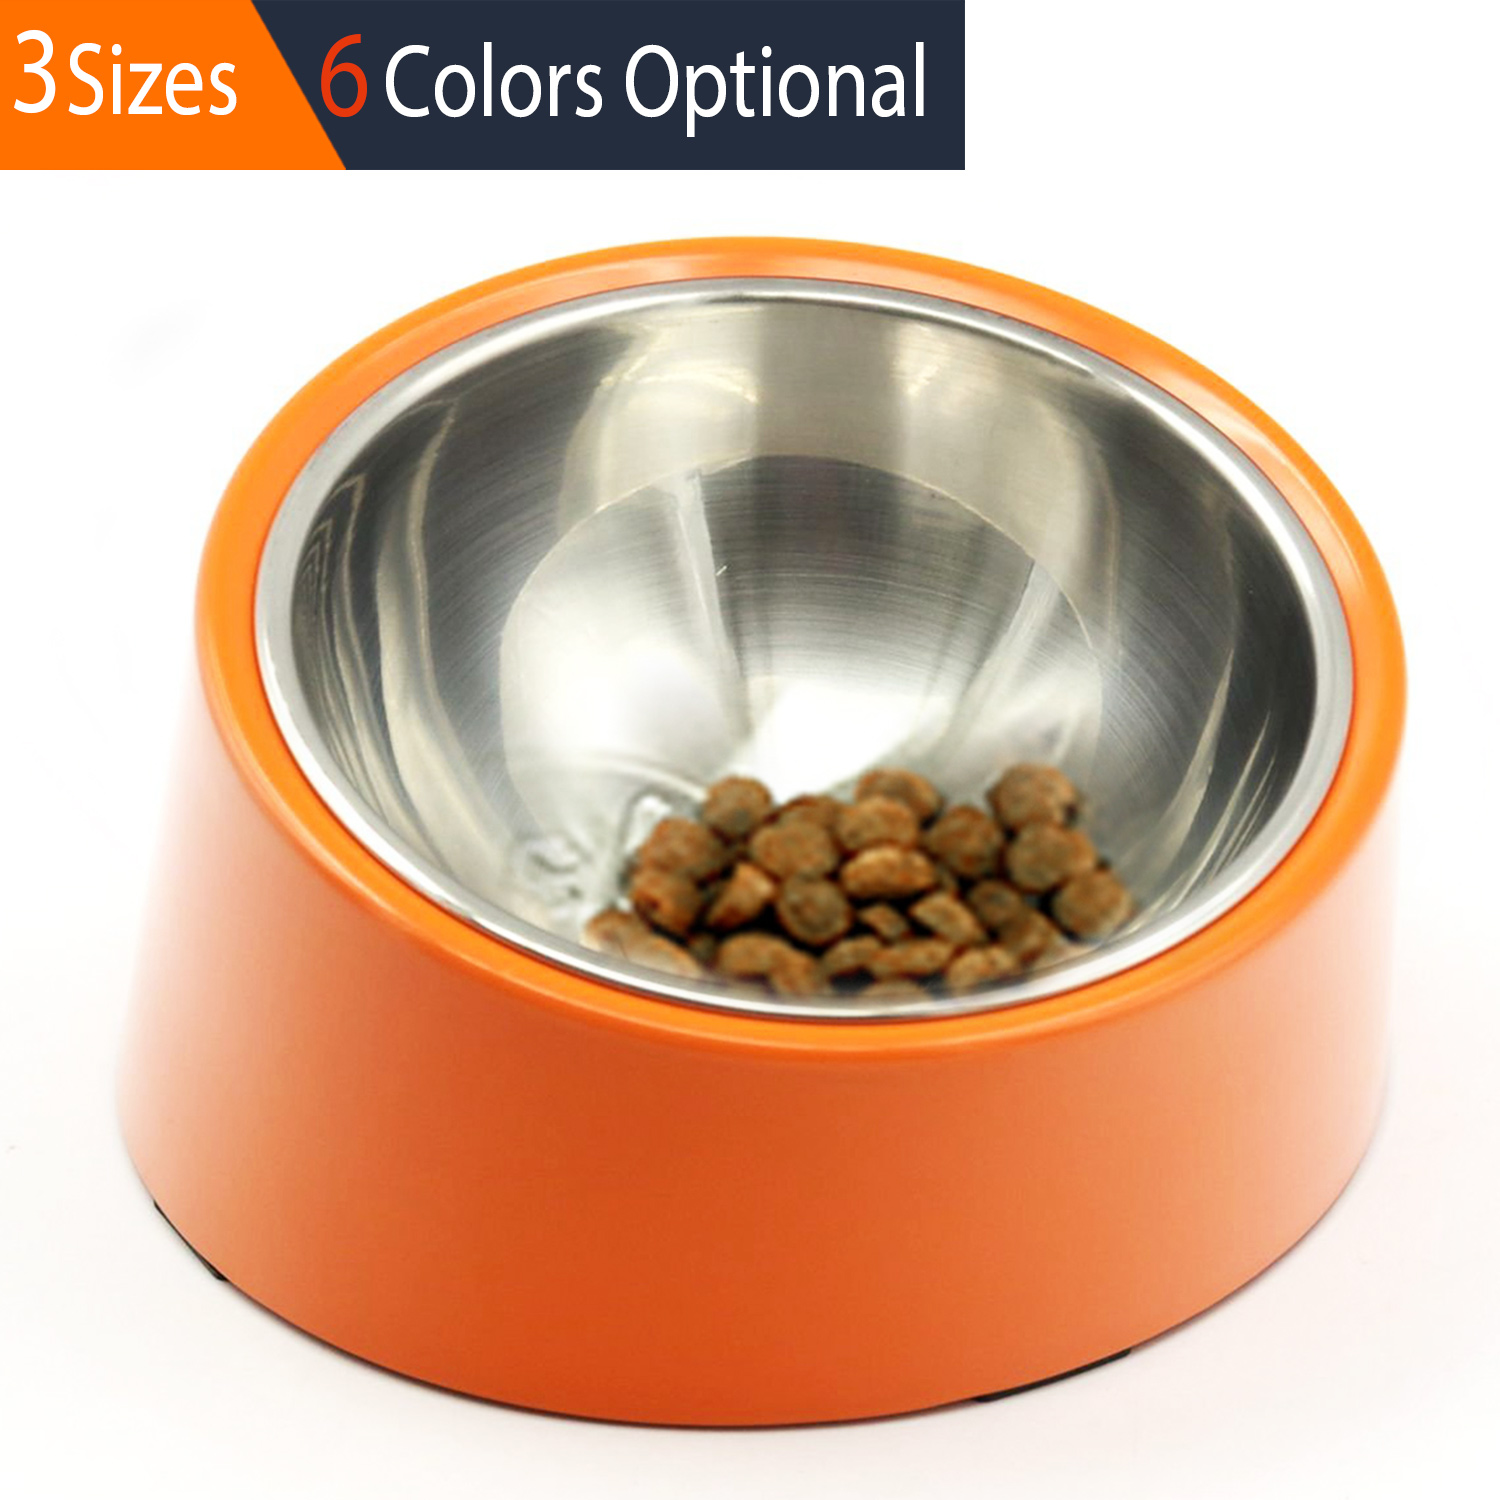 SUPER DESIGN Detachable Stainless Steel Food Bowl with 15 Degree Slanted Anti-Skid Melamine Stand, for Dogs and Cats